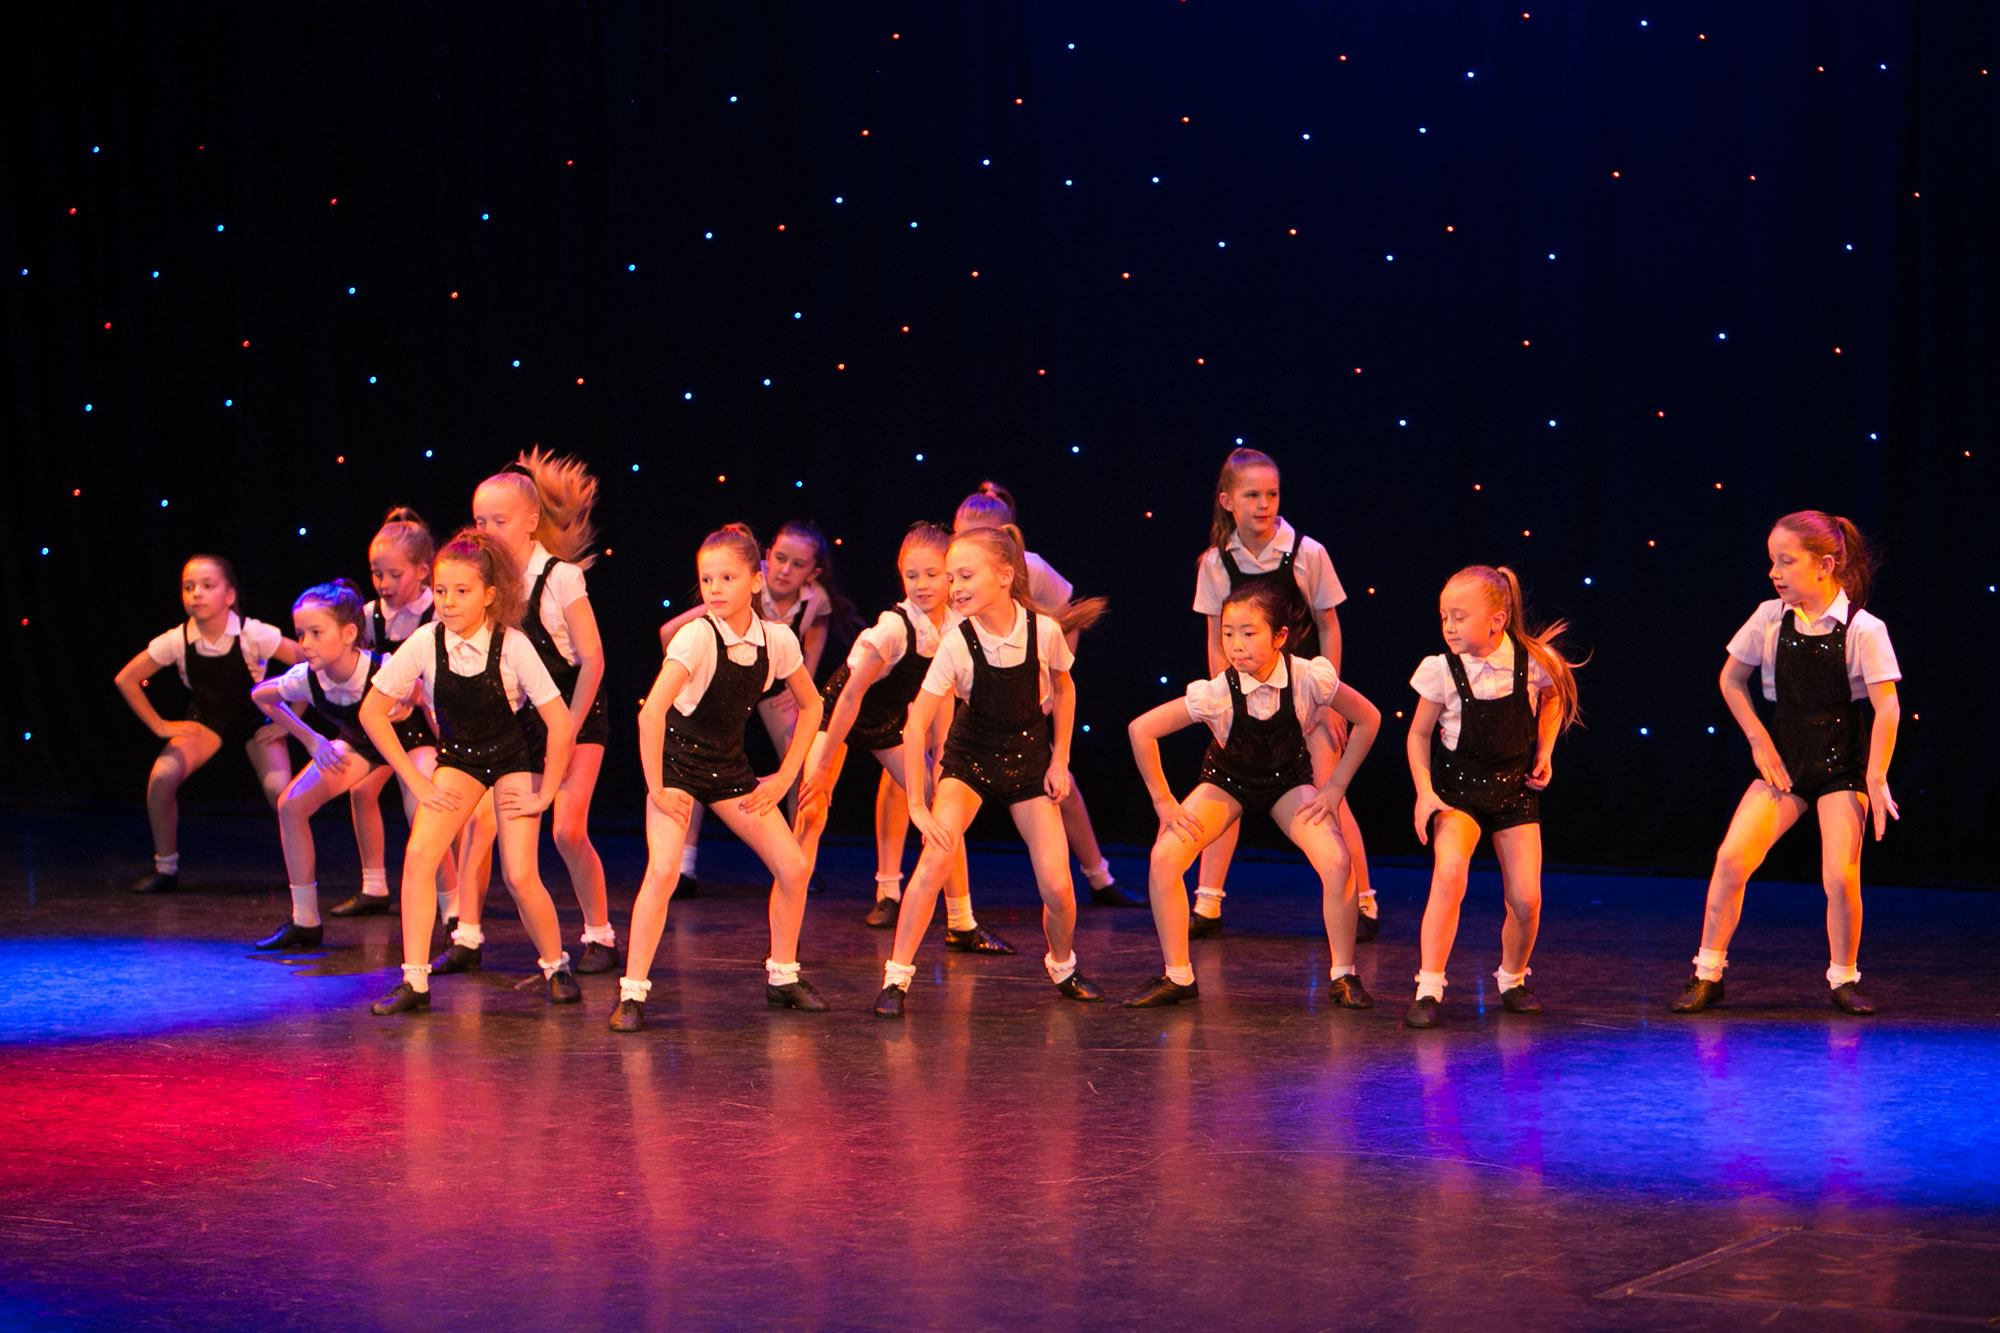 Hitchin_School_of_Dance_Show_2019-SM1_3098.jpg